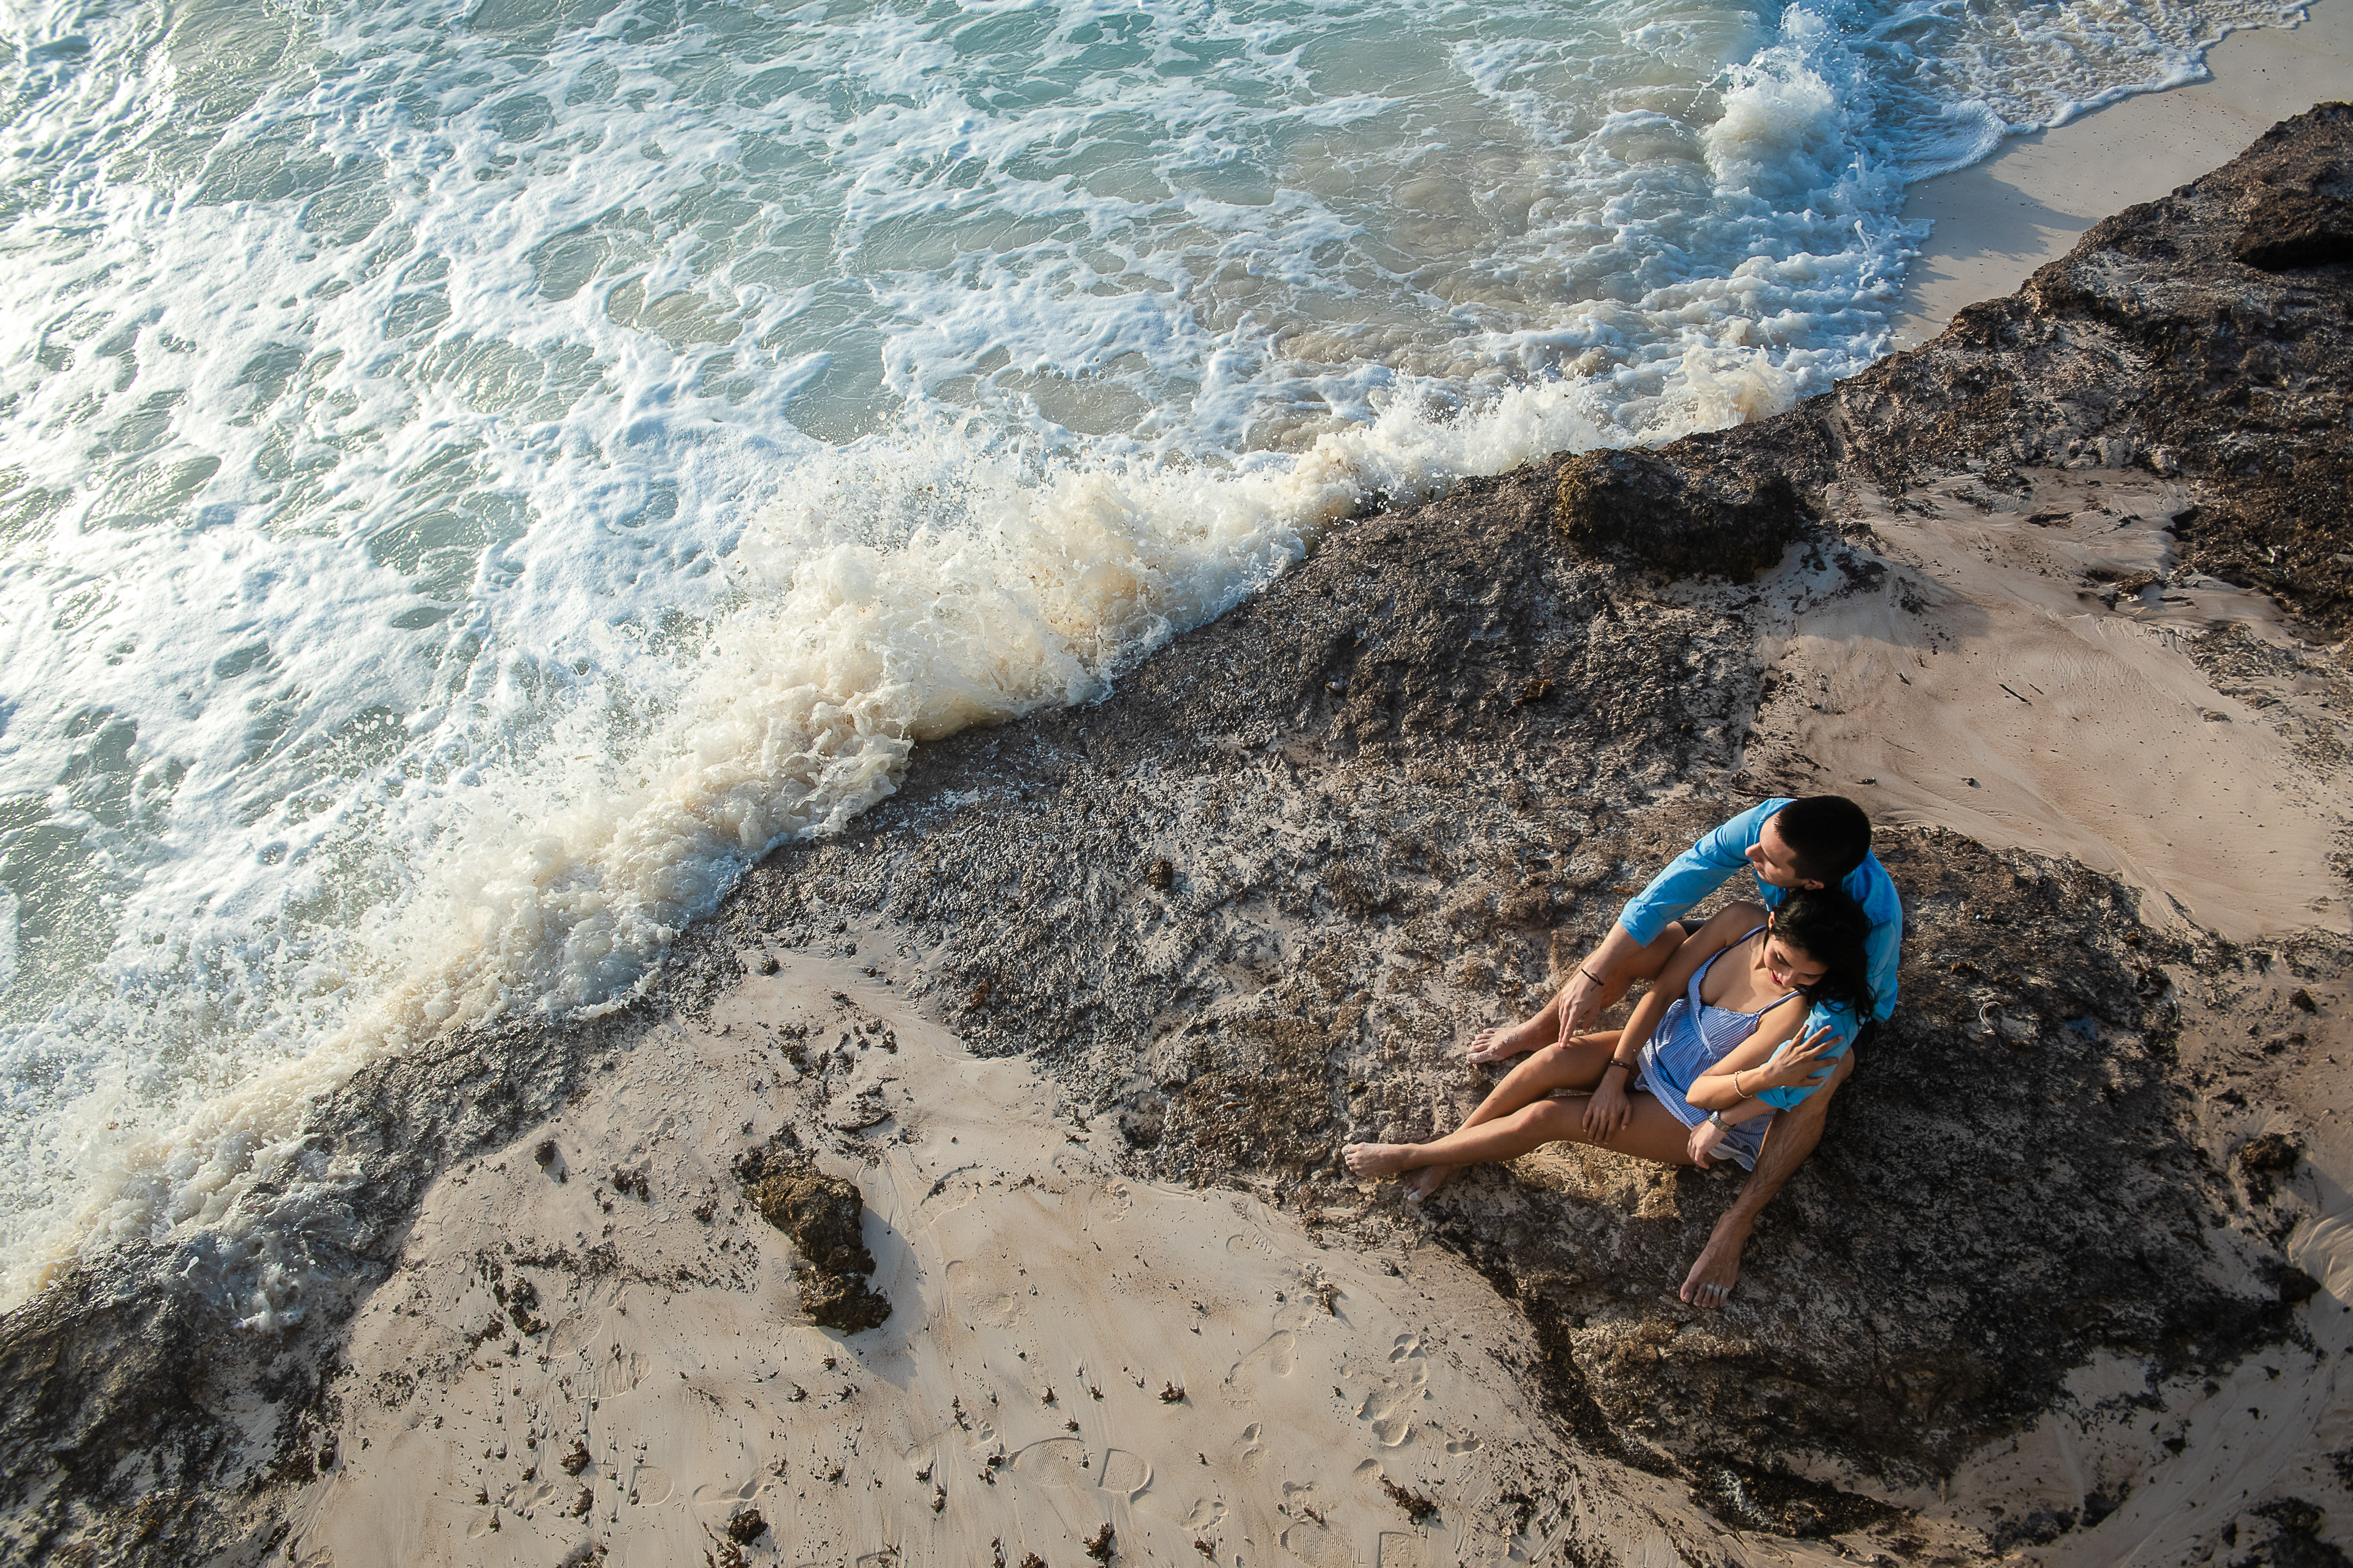 couple smiling sitting on the rocks dressing in blue and smiling looking at the see in cancun